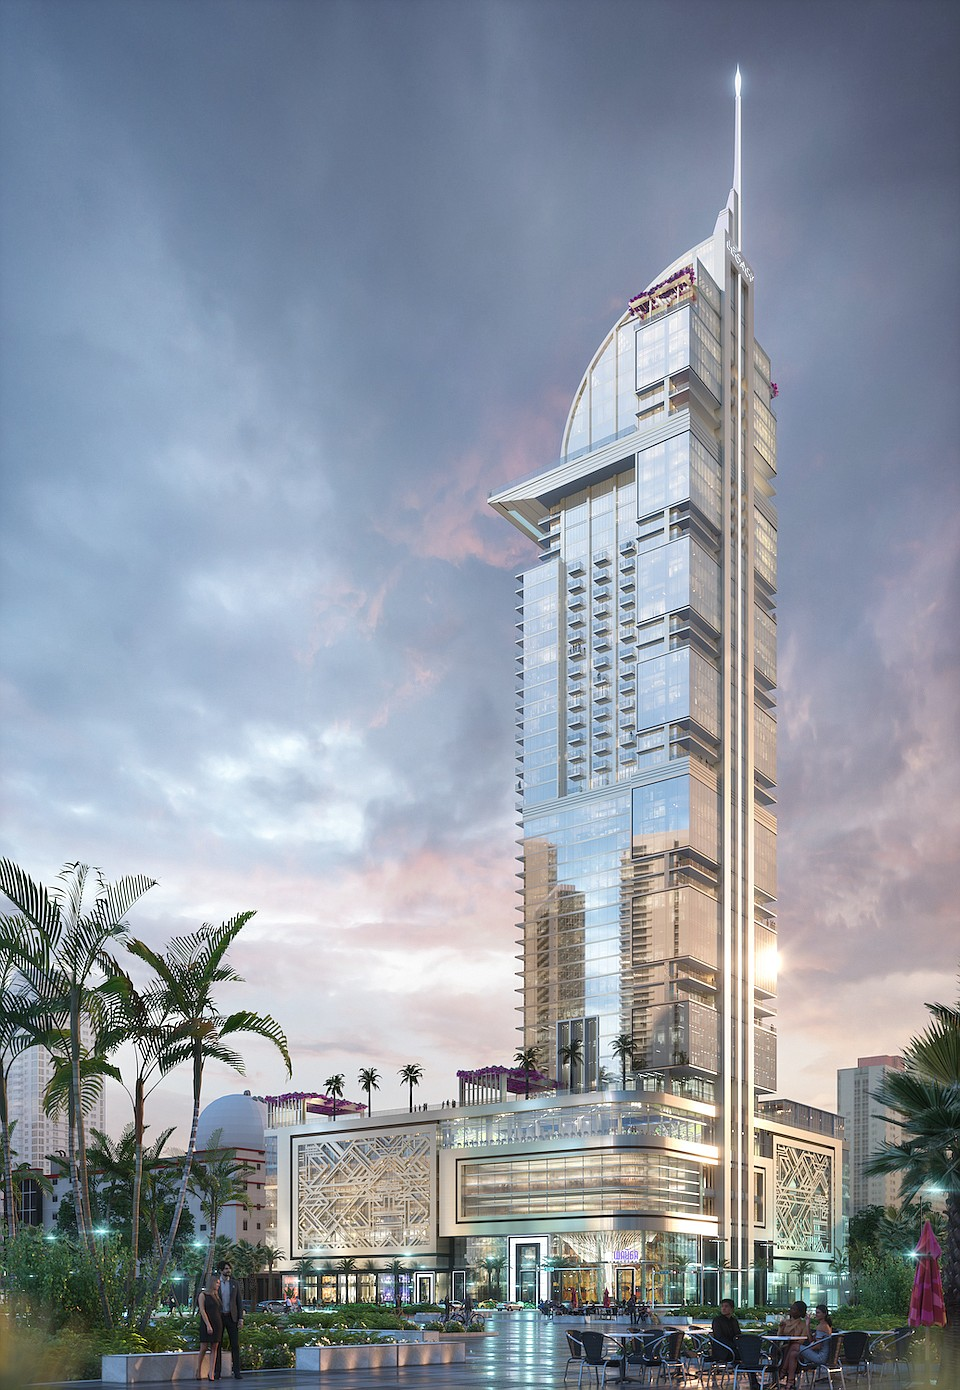 World's First COVID-Conscious Skyscraper and Medical Center Unveiled by Miami Mayor, Adventist Health and Royal Palm Companies